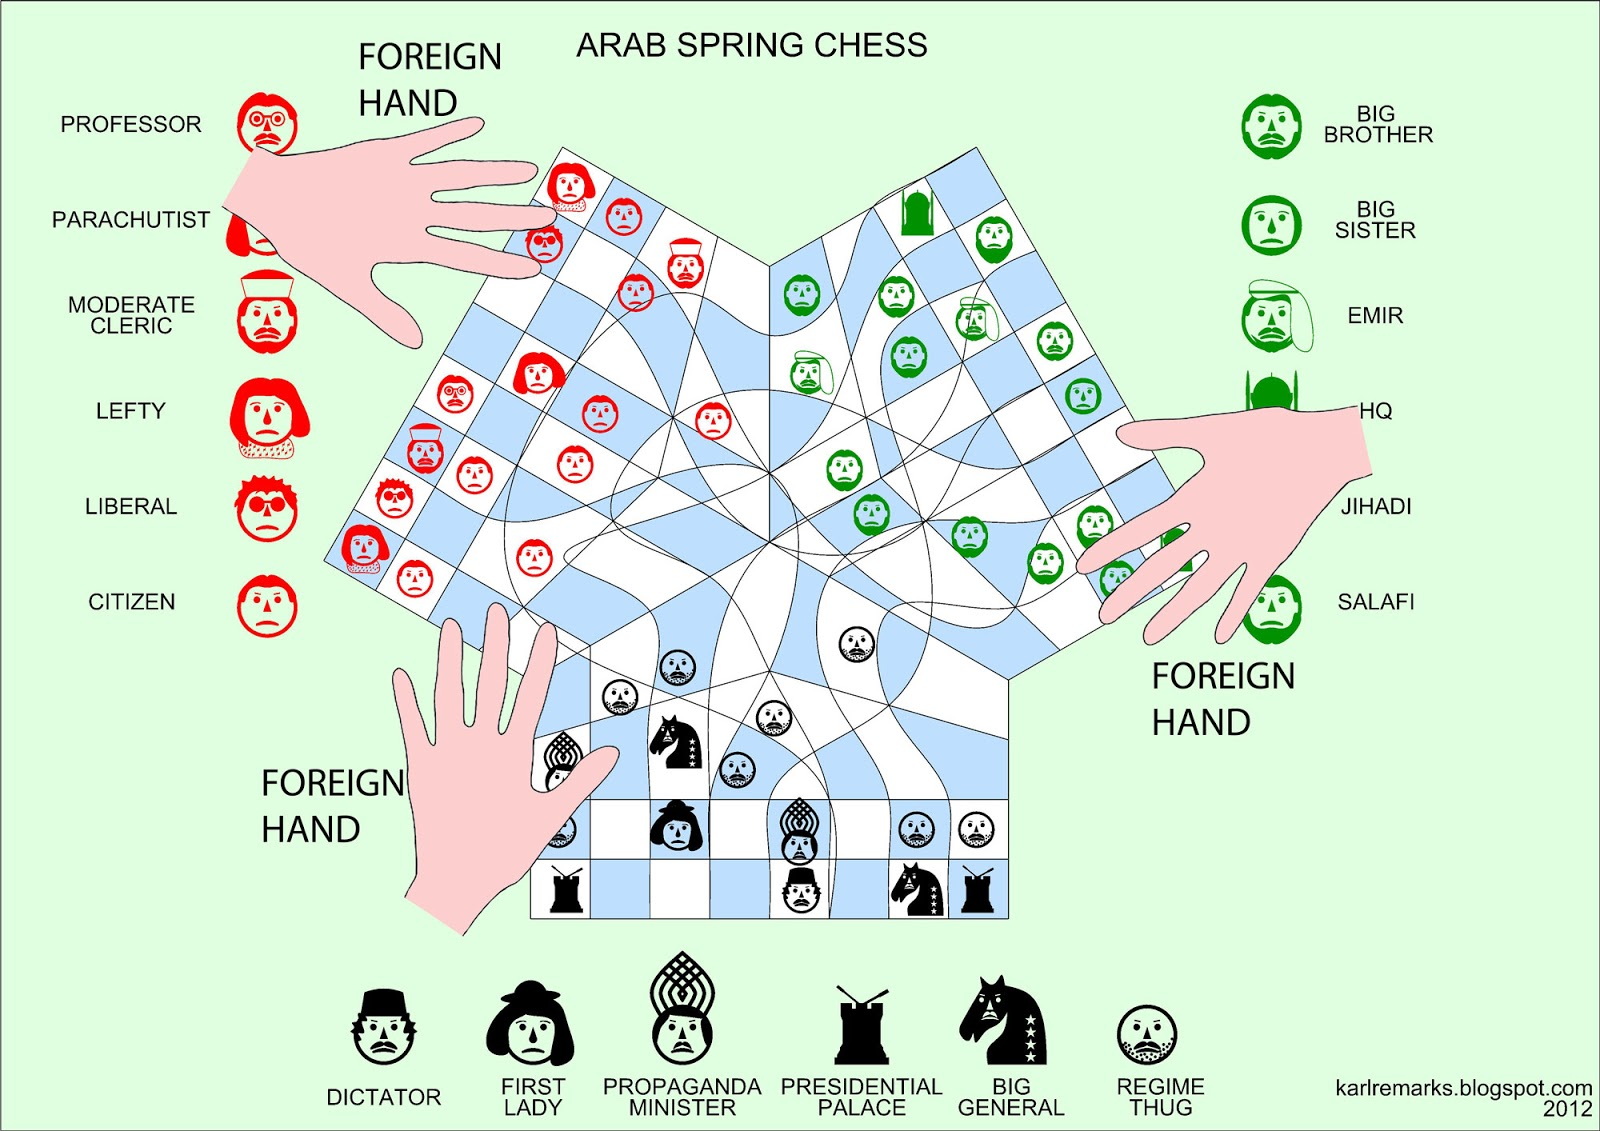 Arab Spring Chess – Map of the Arab Spring